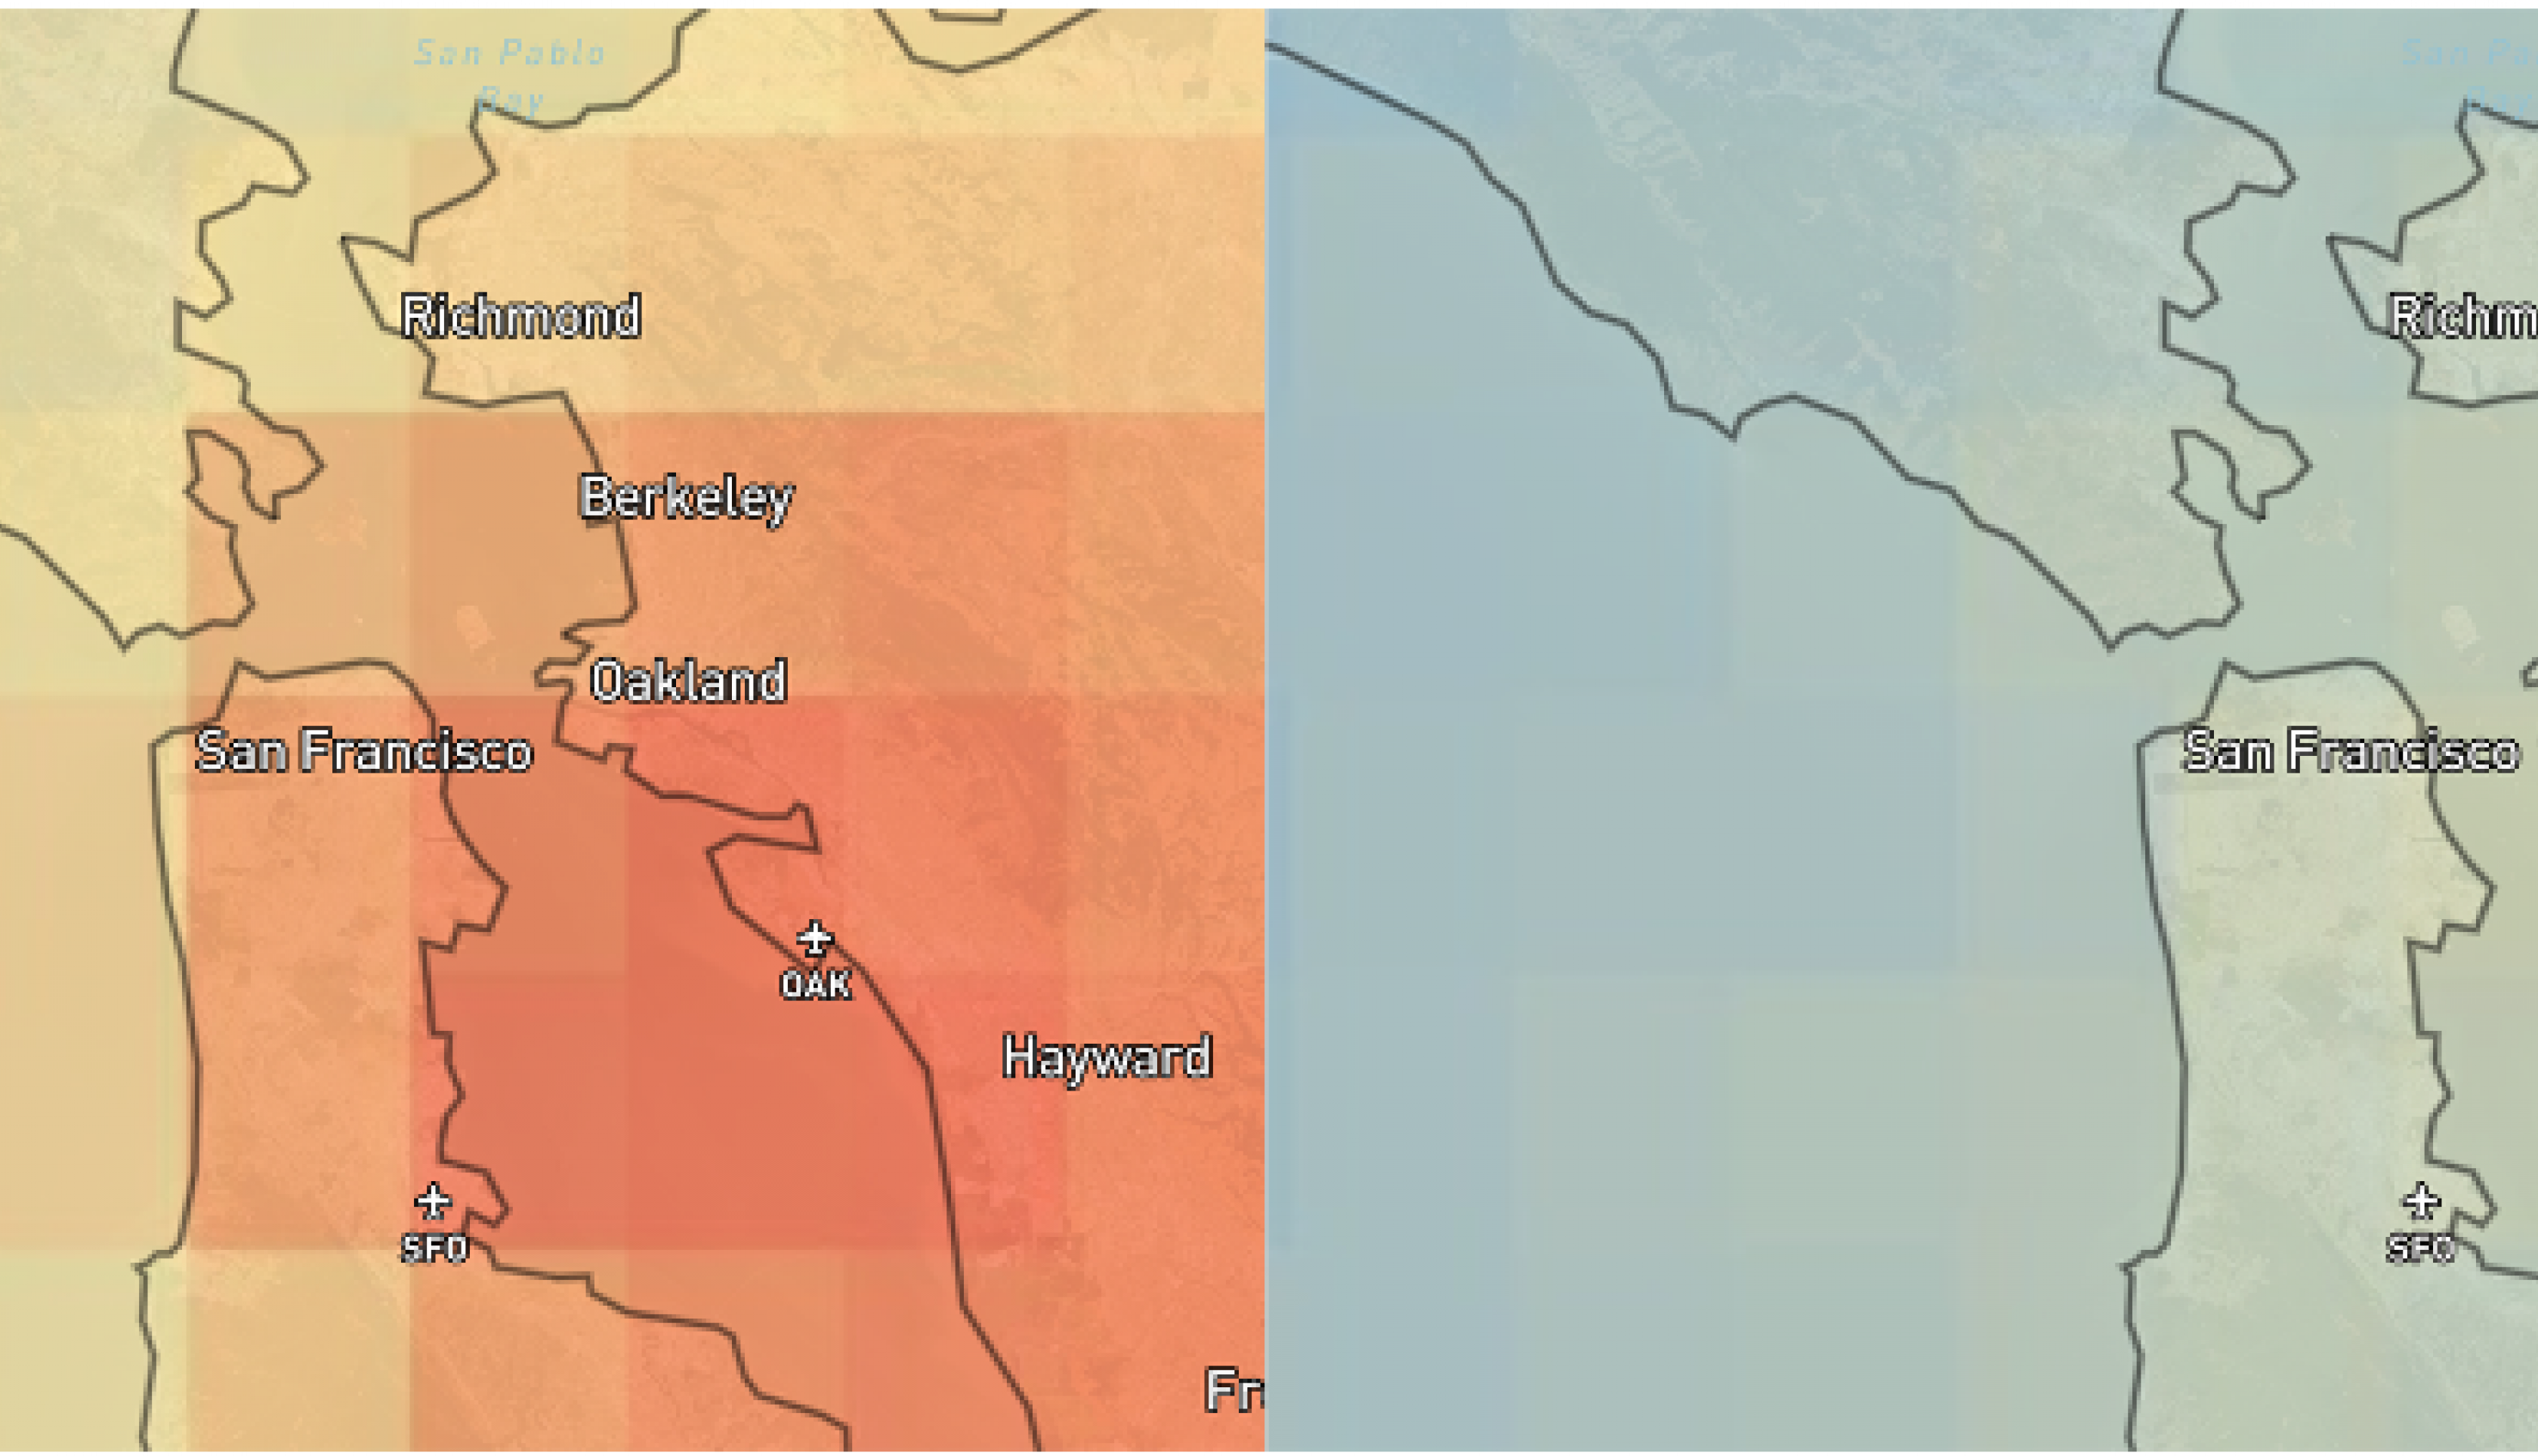 Side by side satellite imagery showing Nitrogen Dioxide levels over a map of San Francisco